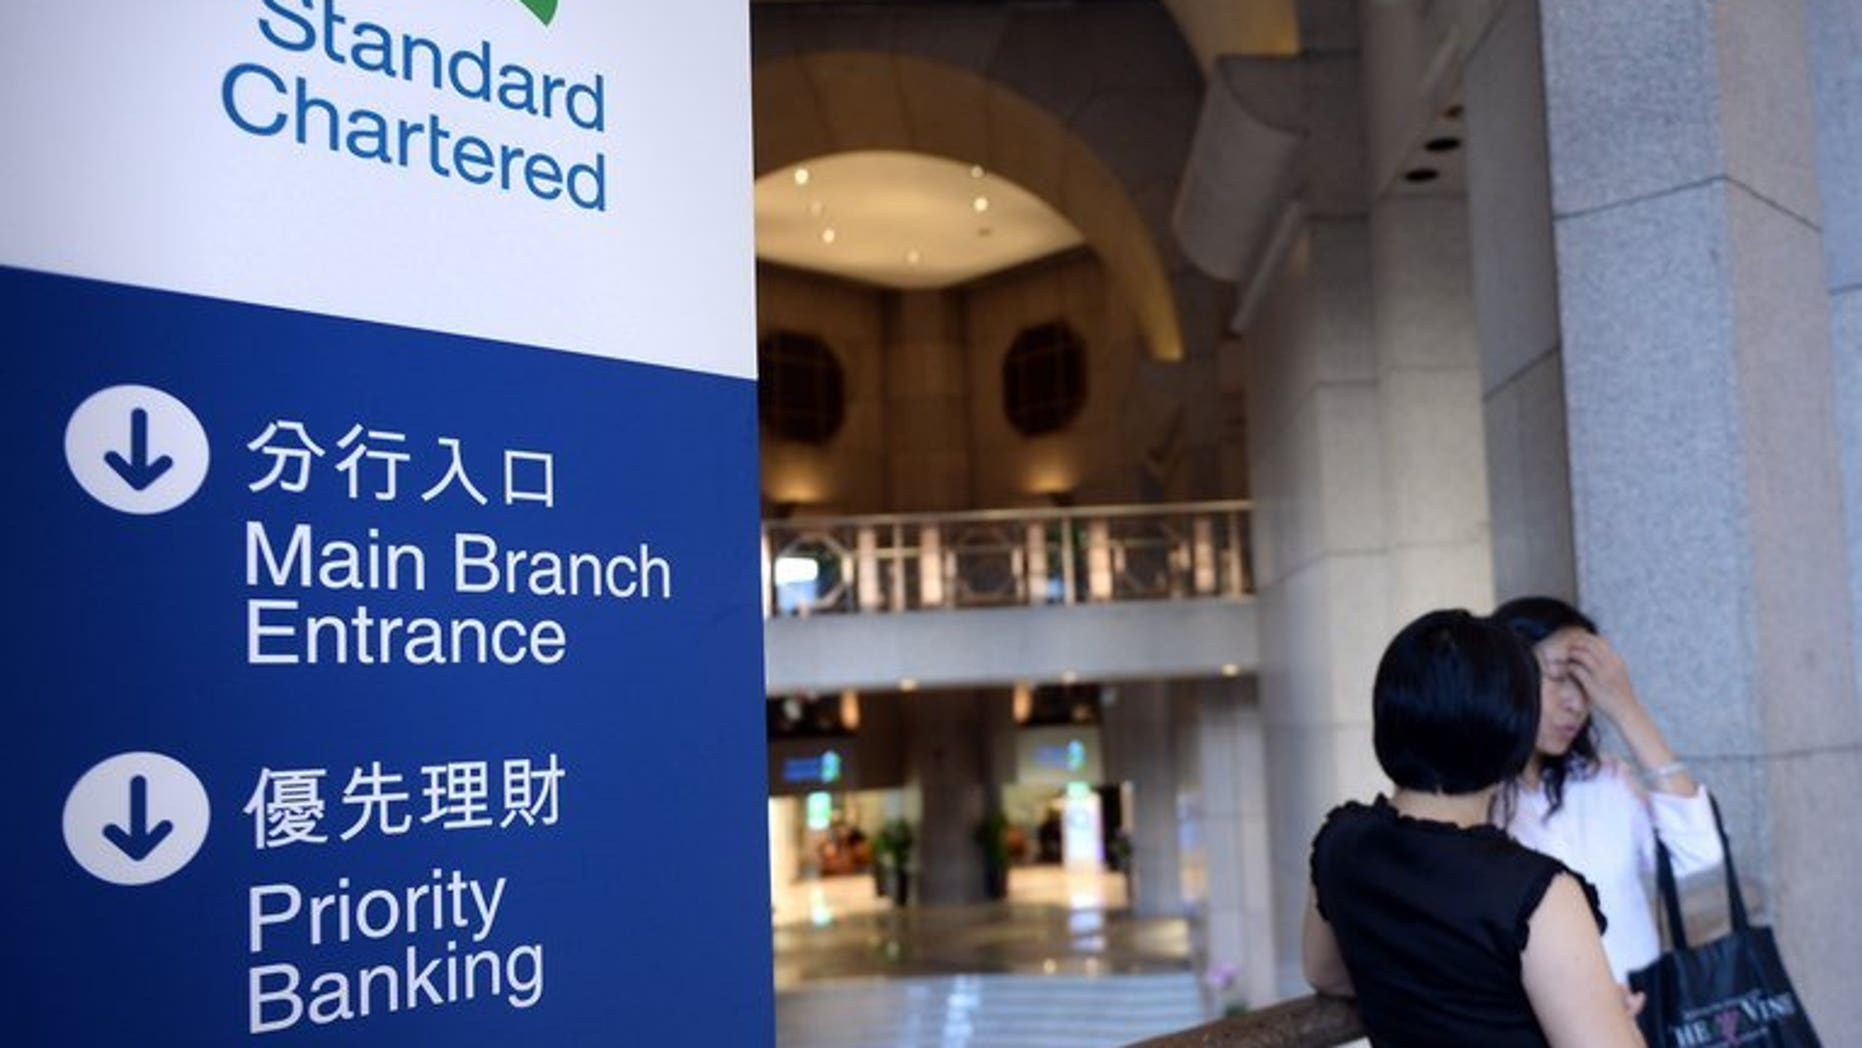 Two women inside a Standard Chartered bank branch in Hong Kong Tuesday. Standard Chartered on Tuesday said its first-half net profit fell 24 percent, with some of its businesses in emerging Asian markets seeing slower growth.